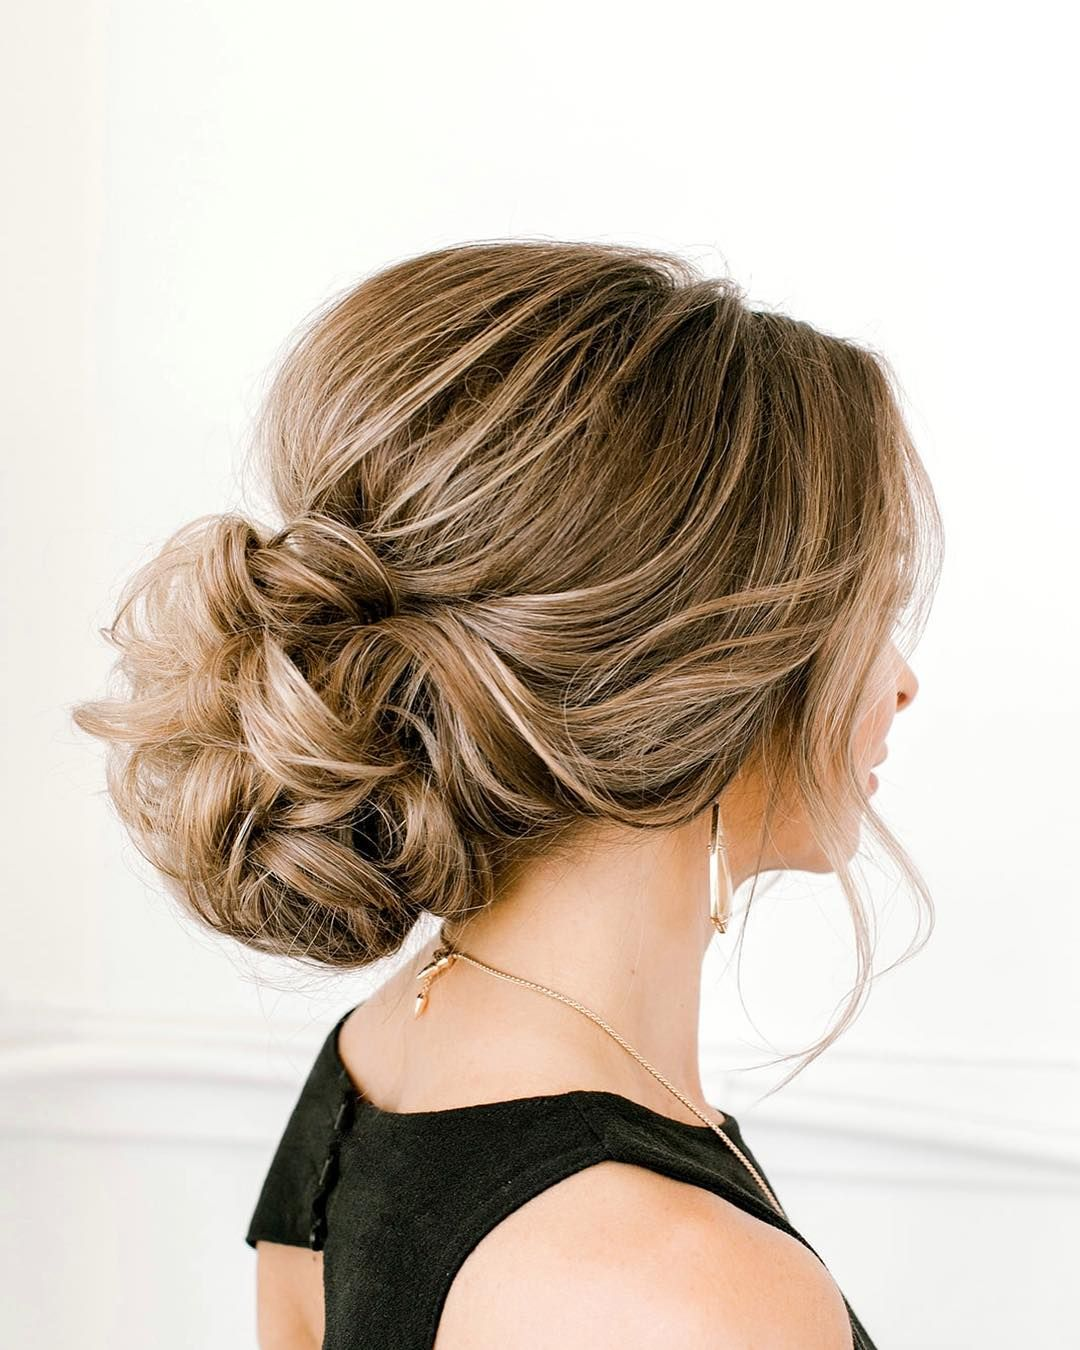 Wedding hairstyles , hairstyle ,bridal updo ,bridal hair ,braid ,braided updo ,boho hairstyle